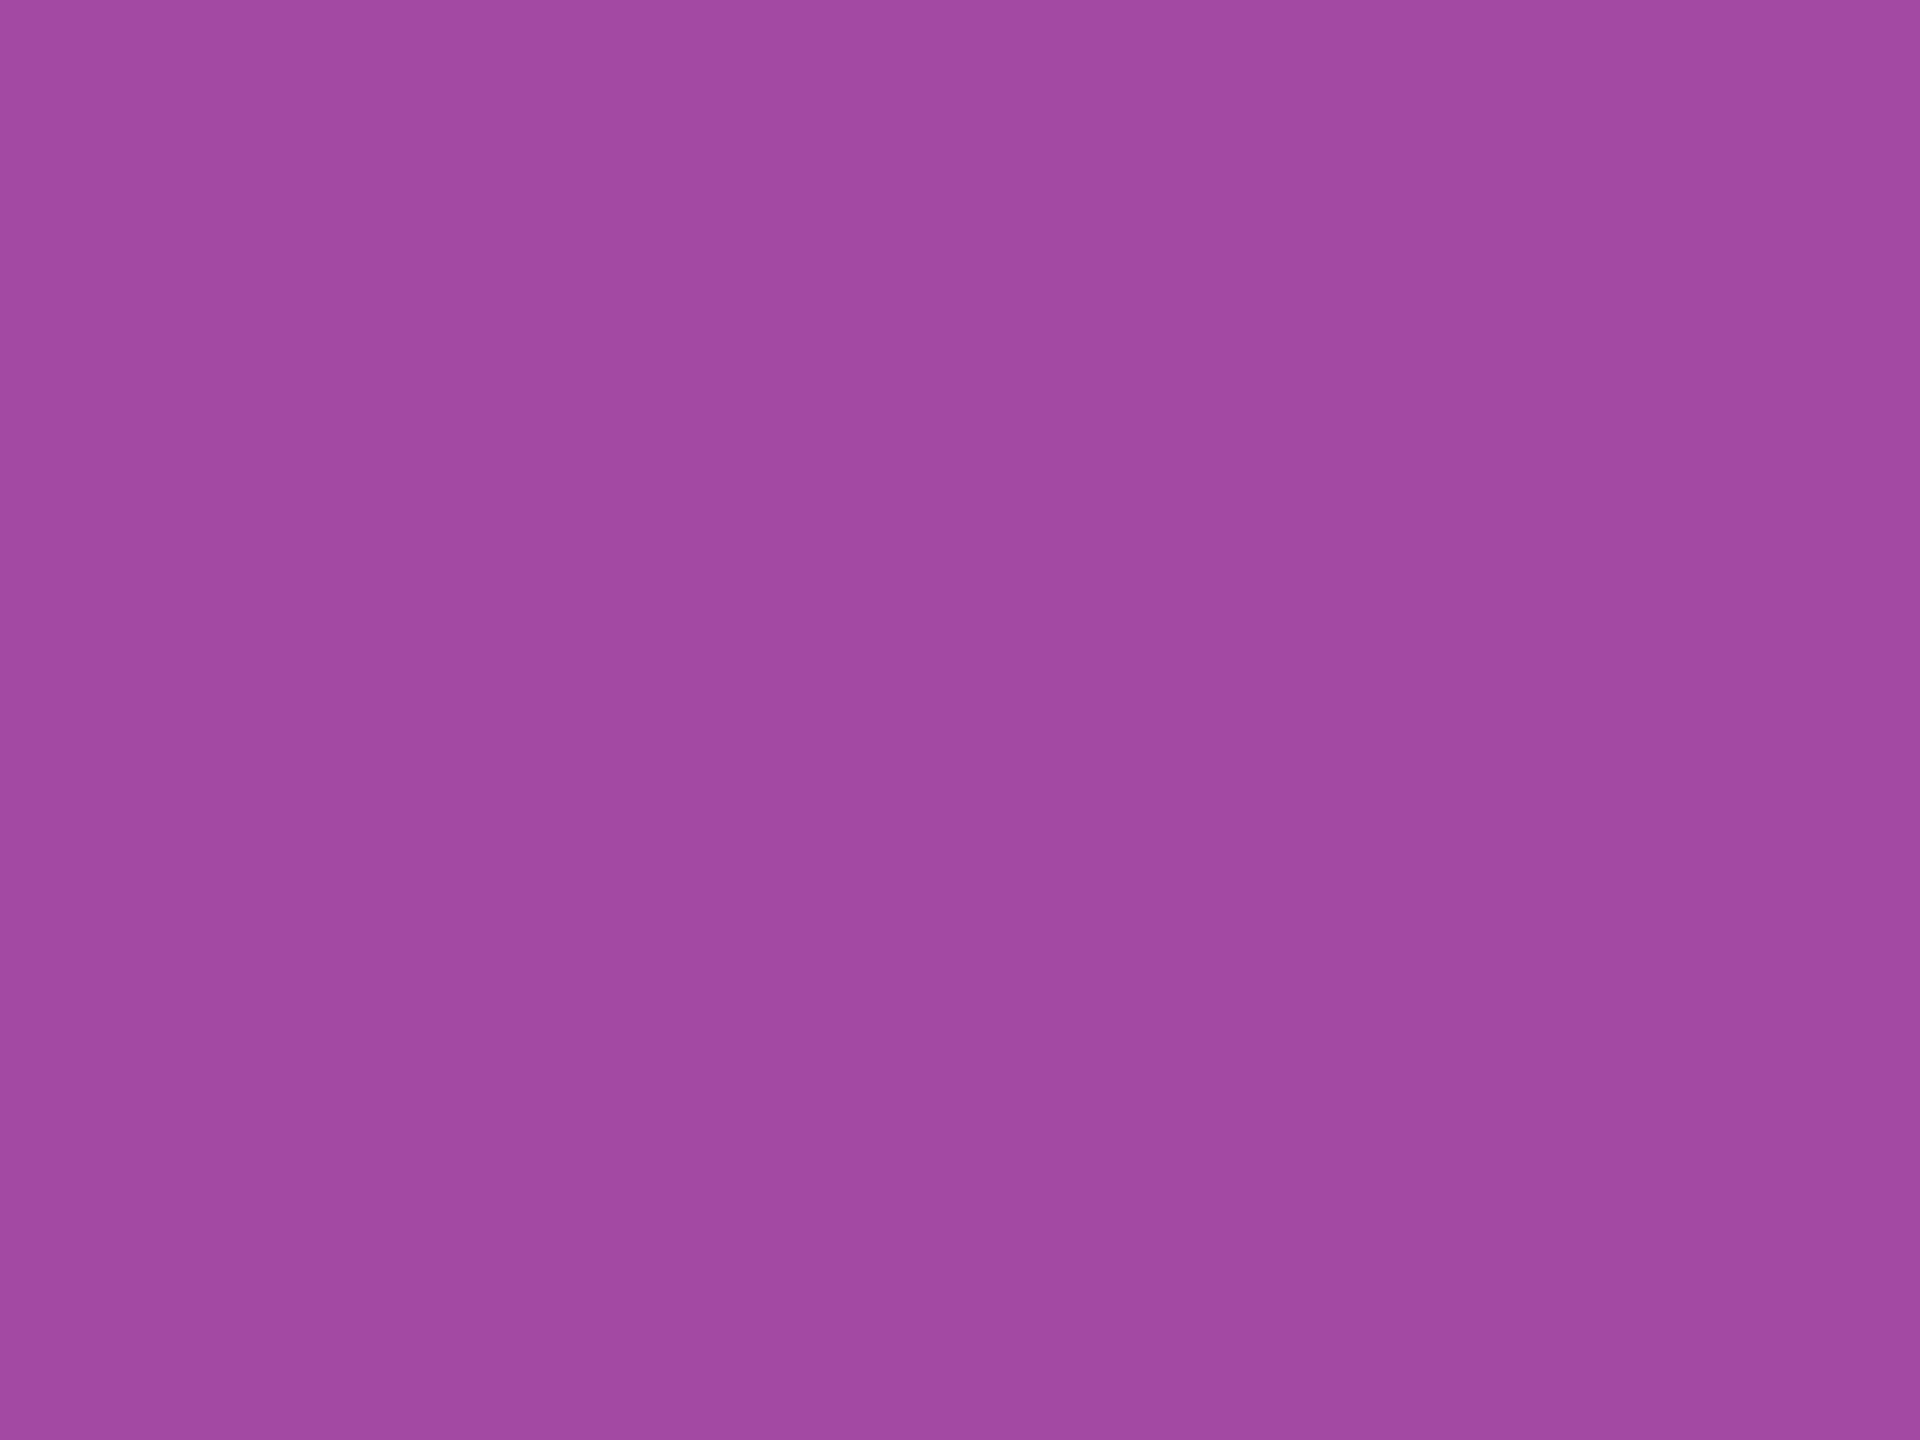 Solid Purple Background Stock Photo Hd Public Domain Pictures X